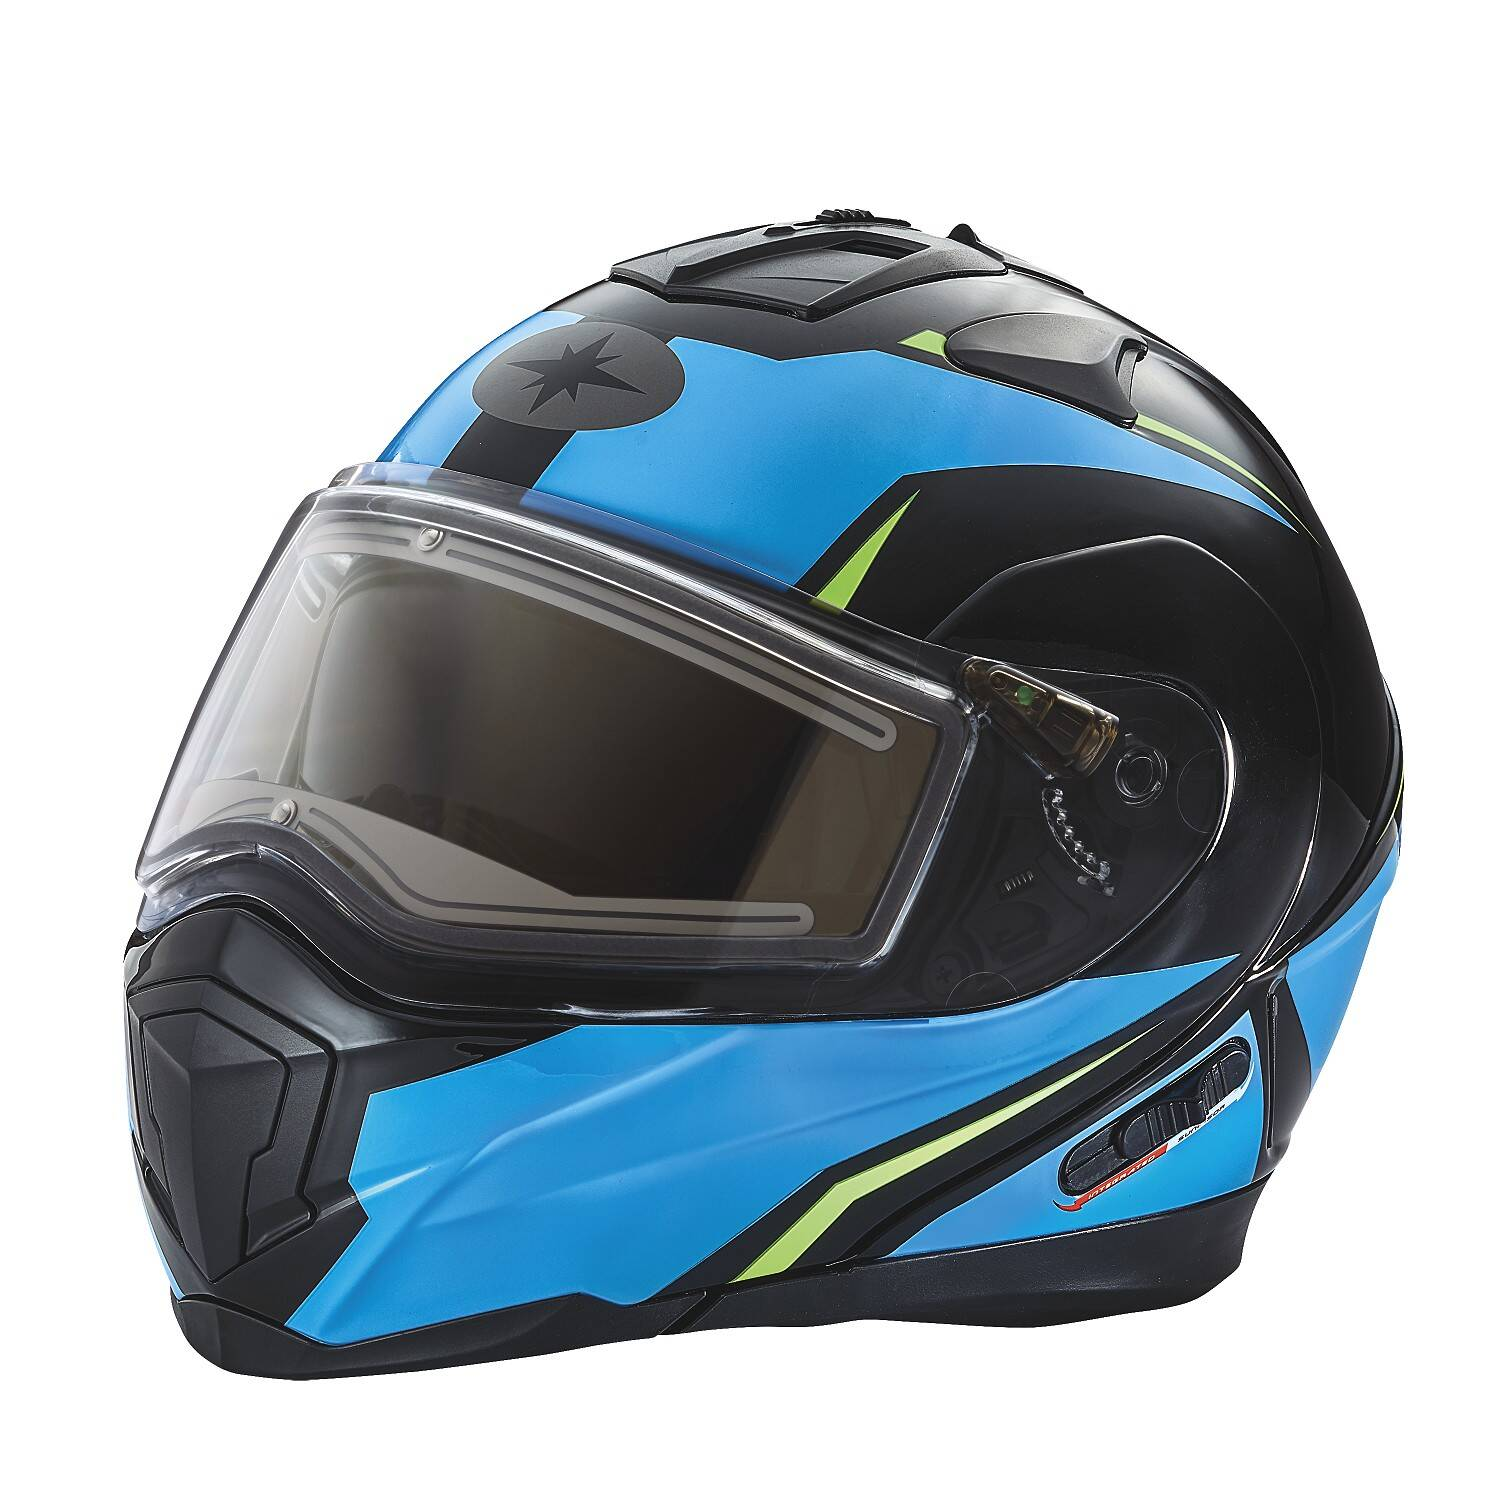 Modular 2.0 Adult Helmet with Electric Shield, Blue/Lime